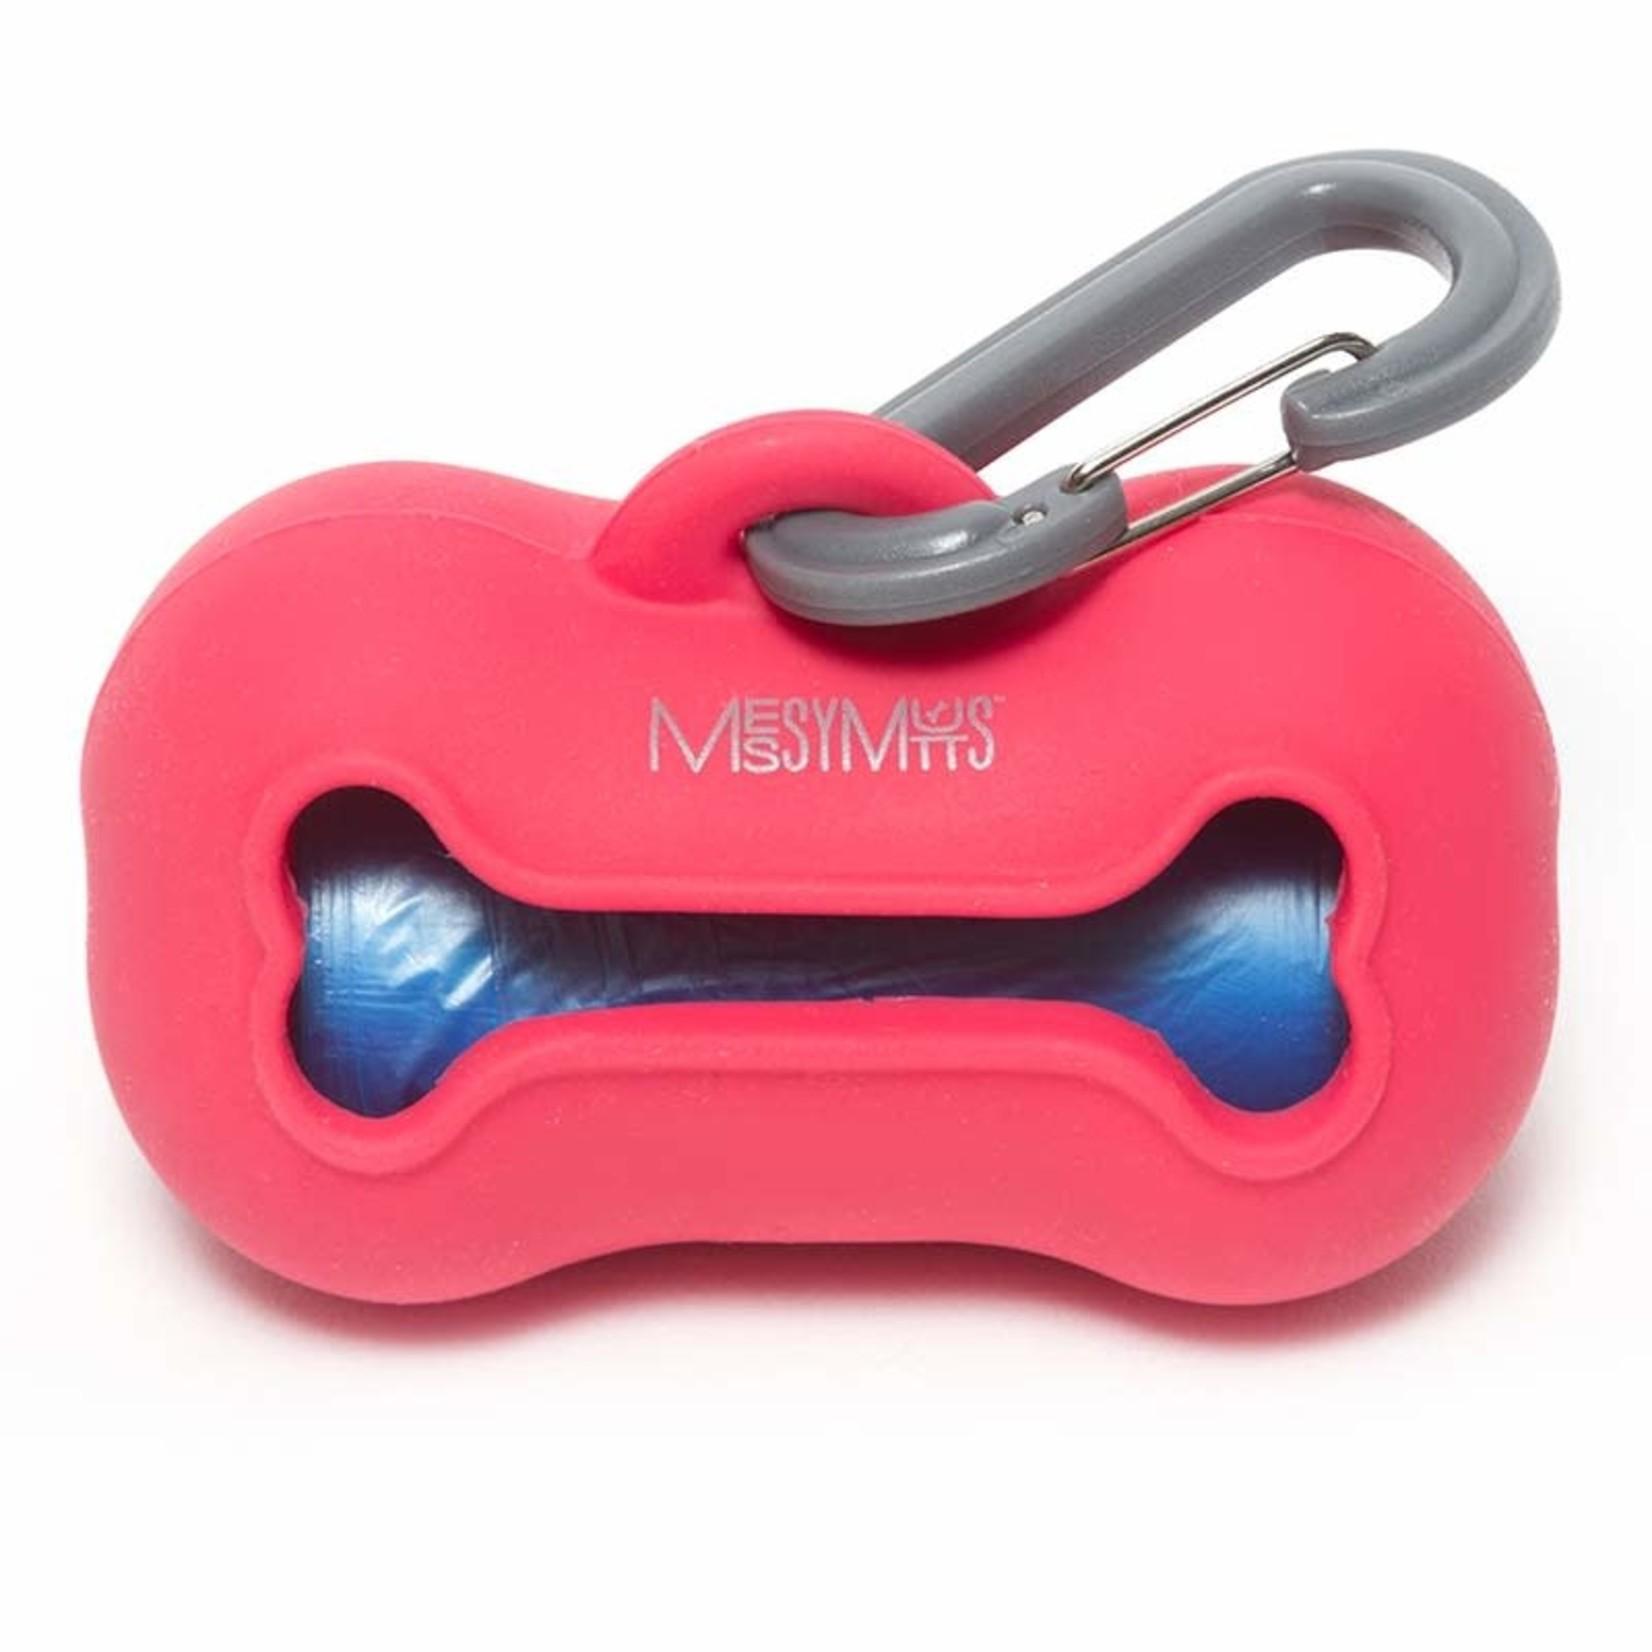 Messy Mutts Messy Mutts Silicone Waste Bag Holder Red